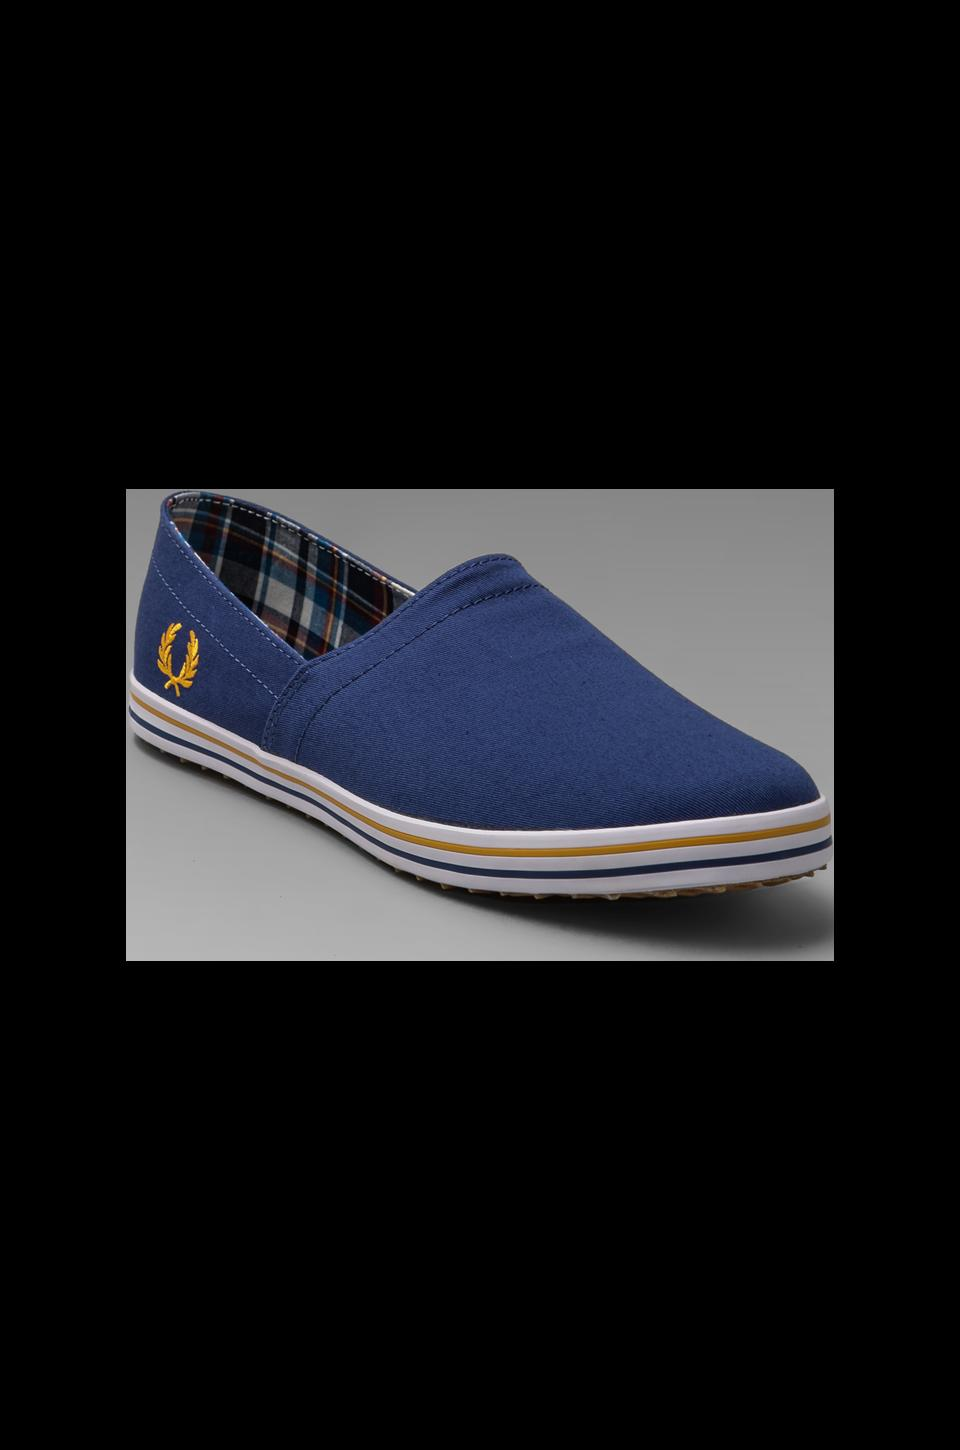 Fred Perry Kingston Stampdown Twill Slip On in Pacific/Gold